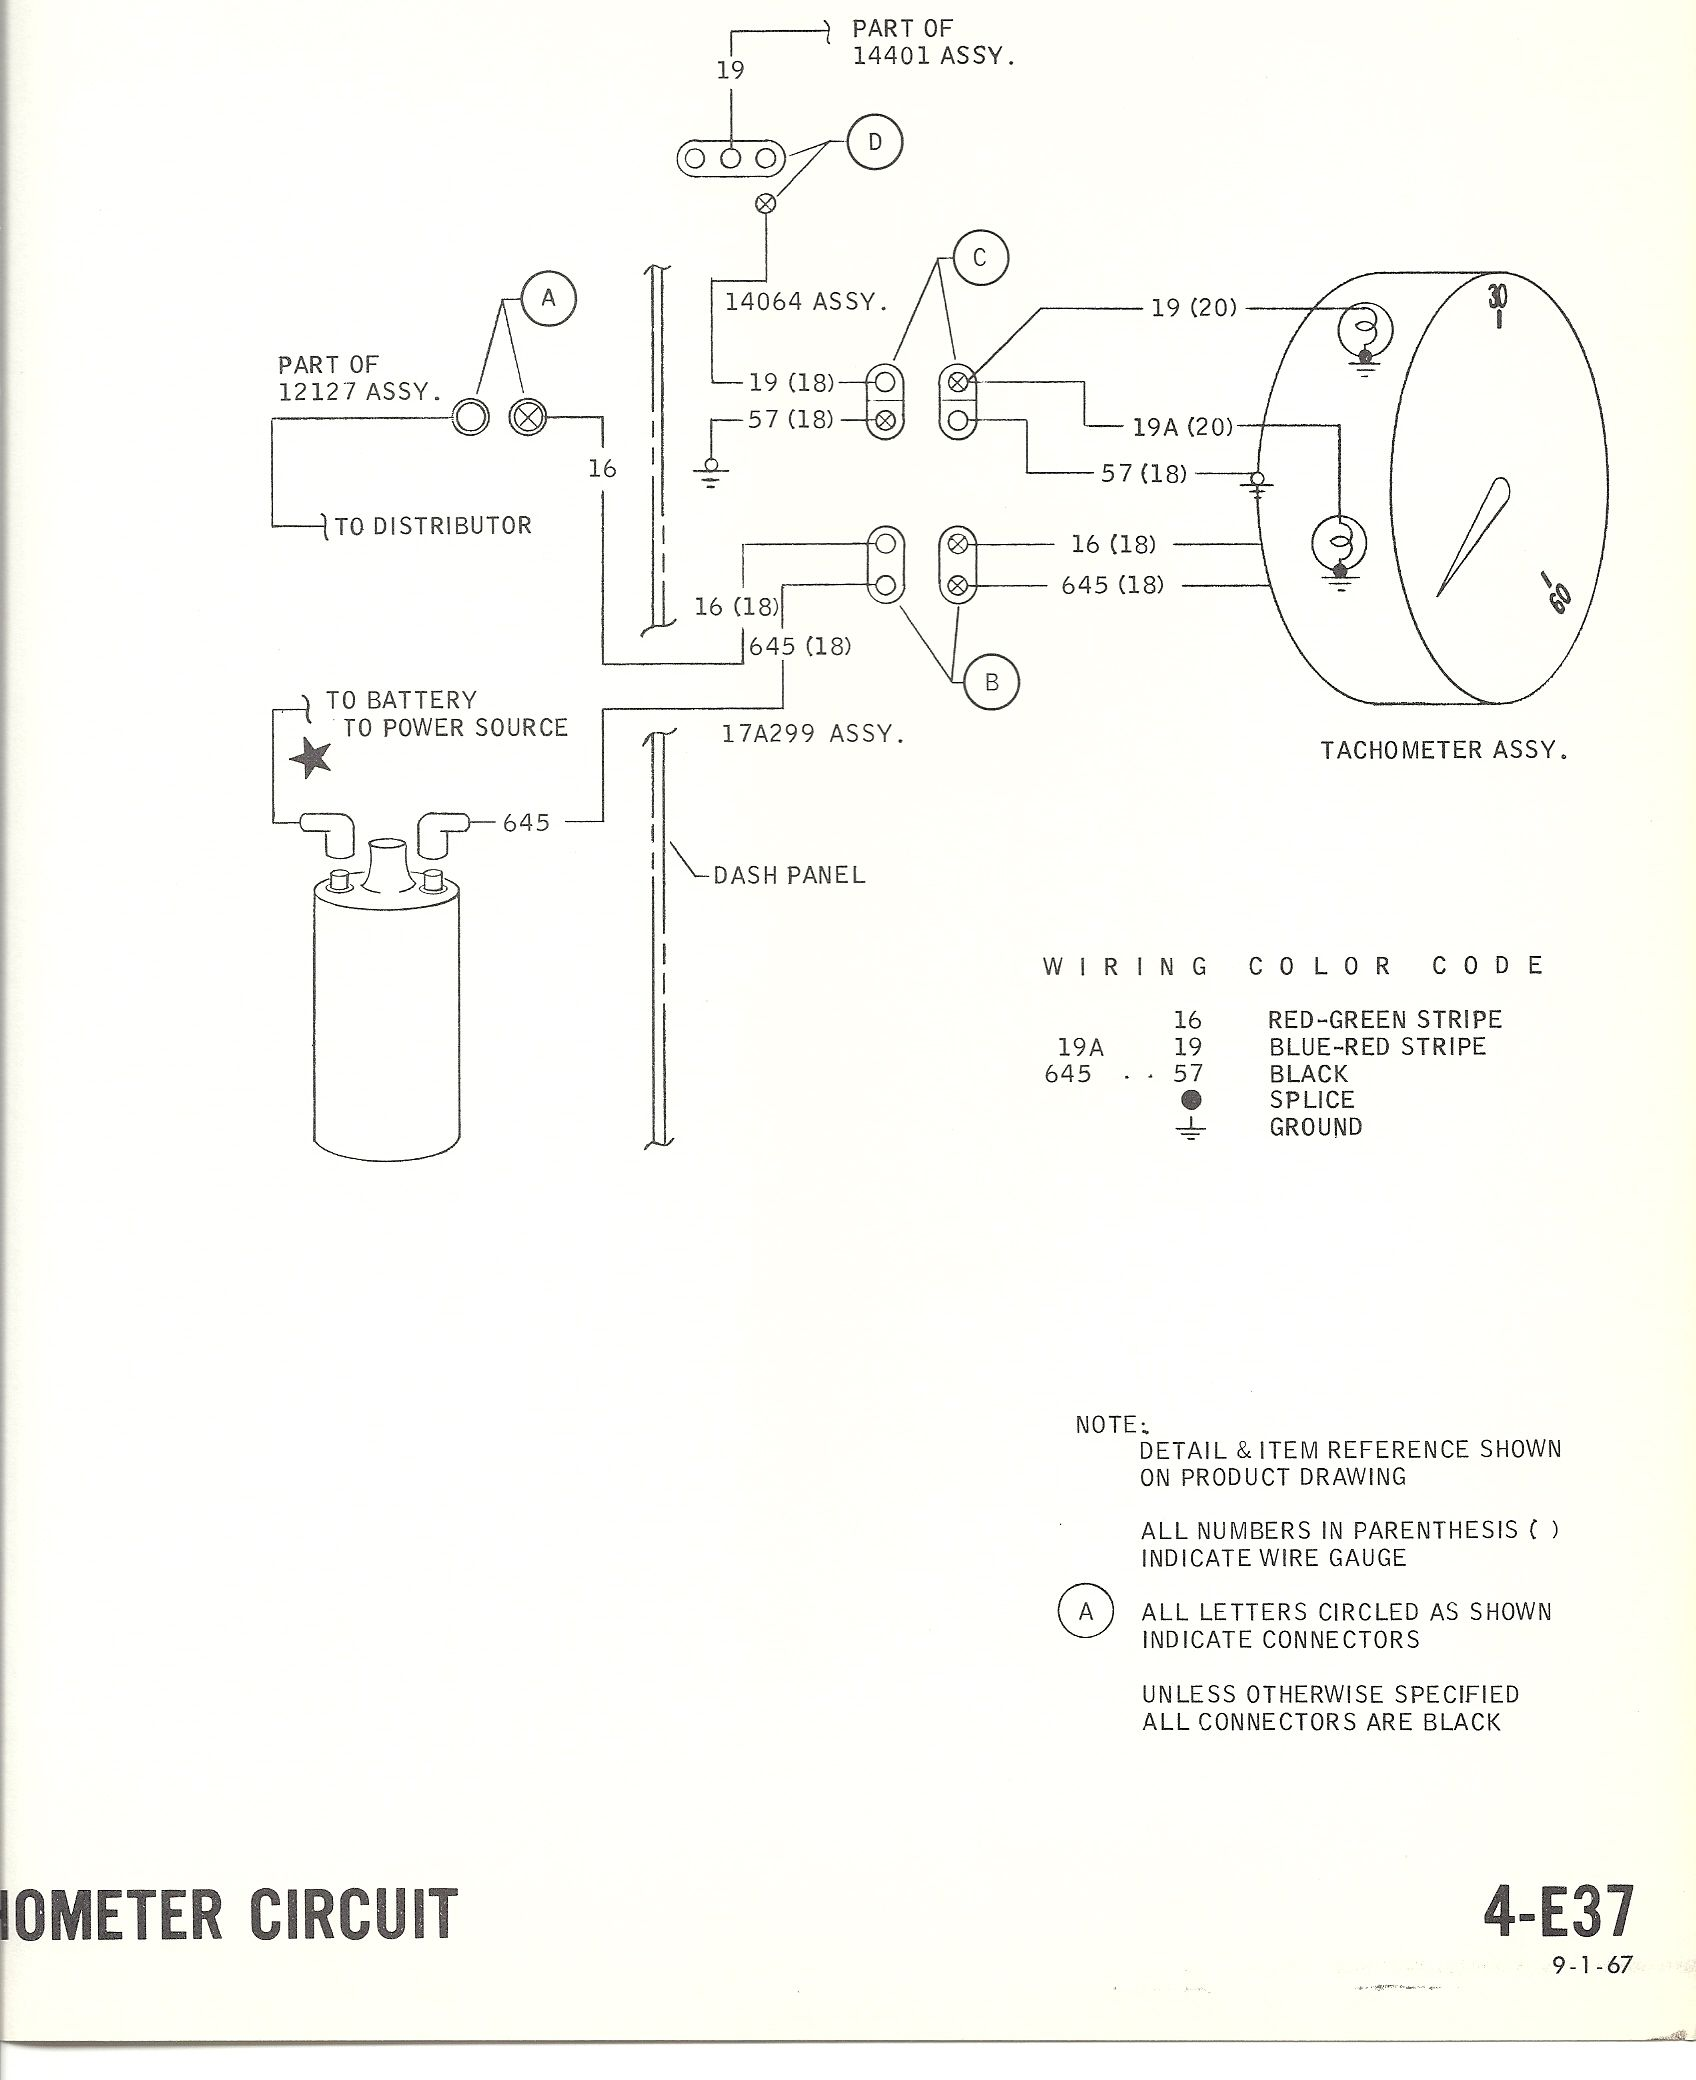 2b2f8e488a4c6a6b870c00f5af30de6c 1967 mustang wiring to tachometer 1968 mustang wiring 1968 mustang ignition switch wiring diagram at n-0.co